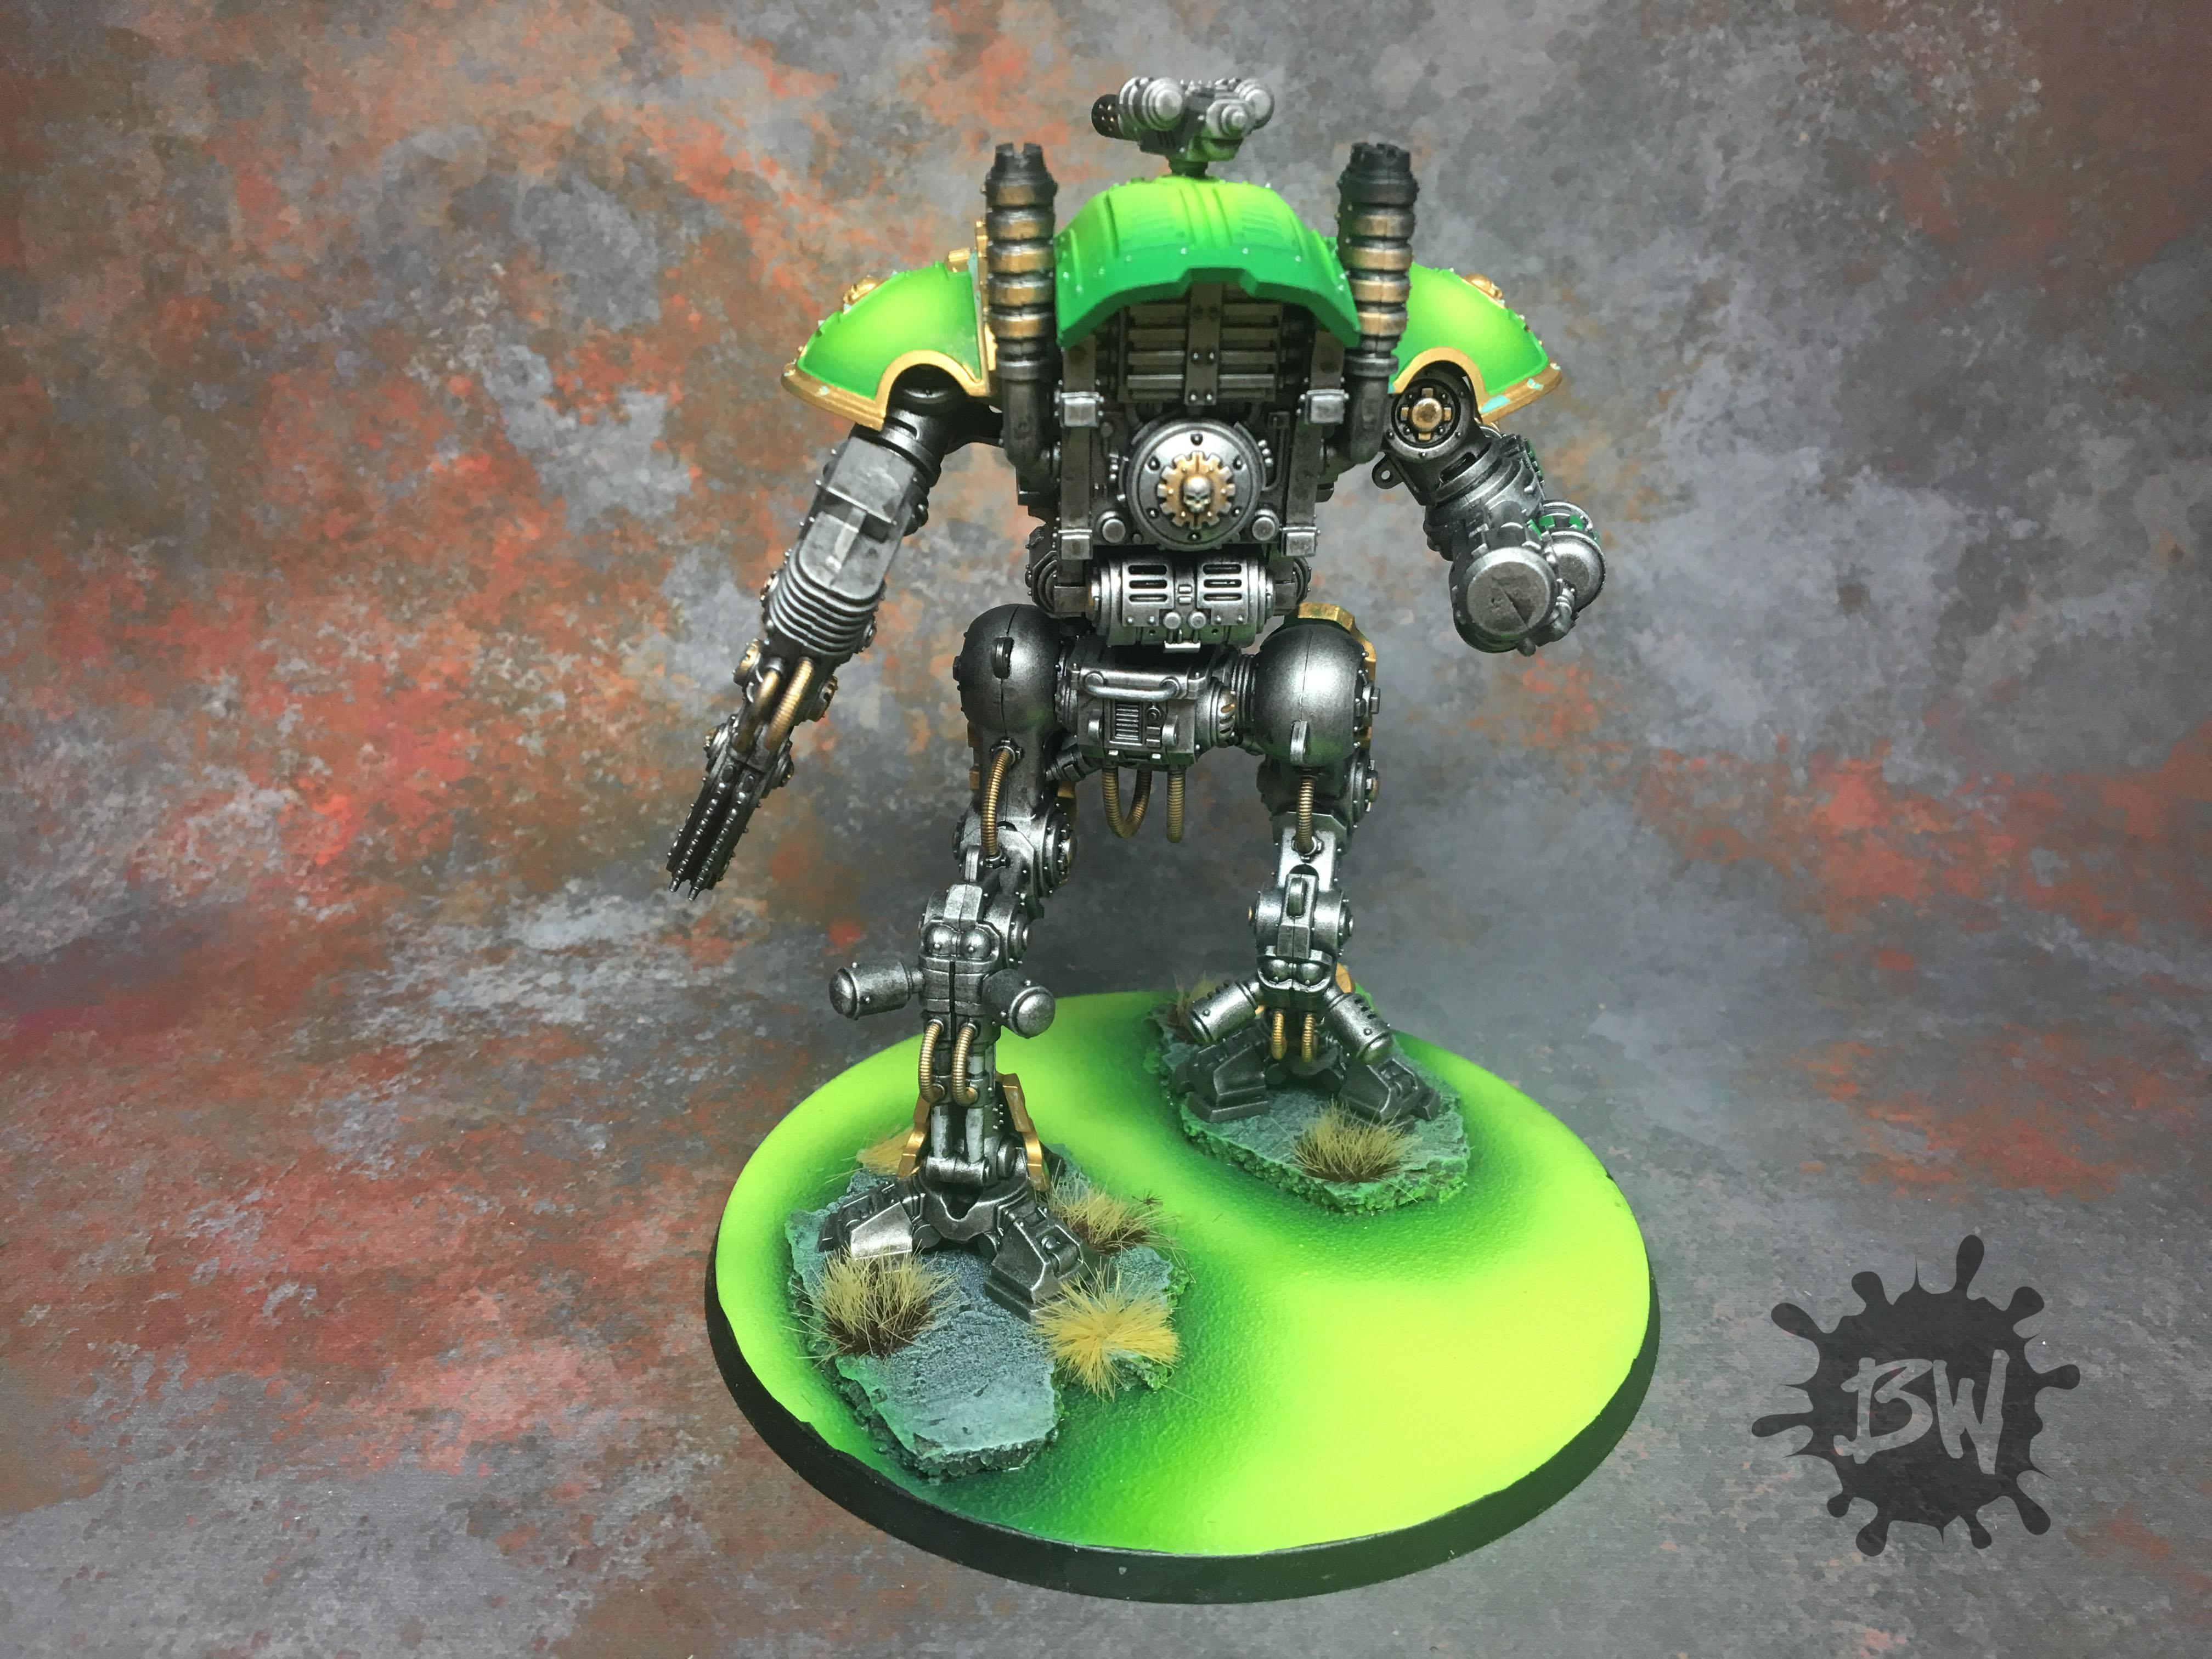 Armiger Warglaive, Imperial Knights, Imperium, Warhammer 40,000